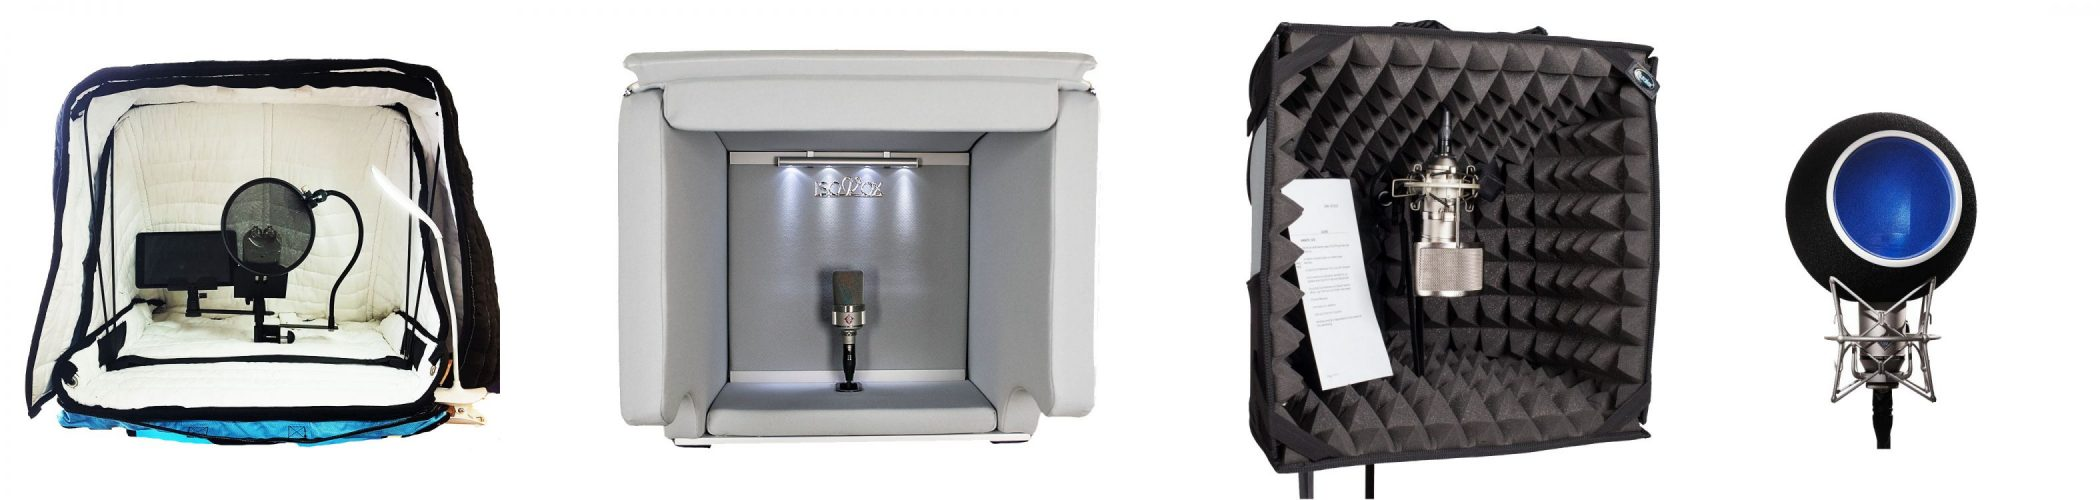 portable vocal booth review